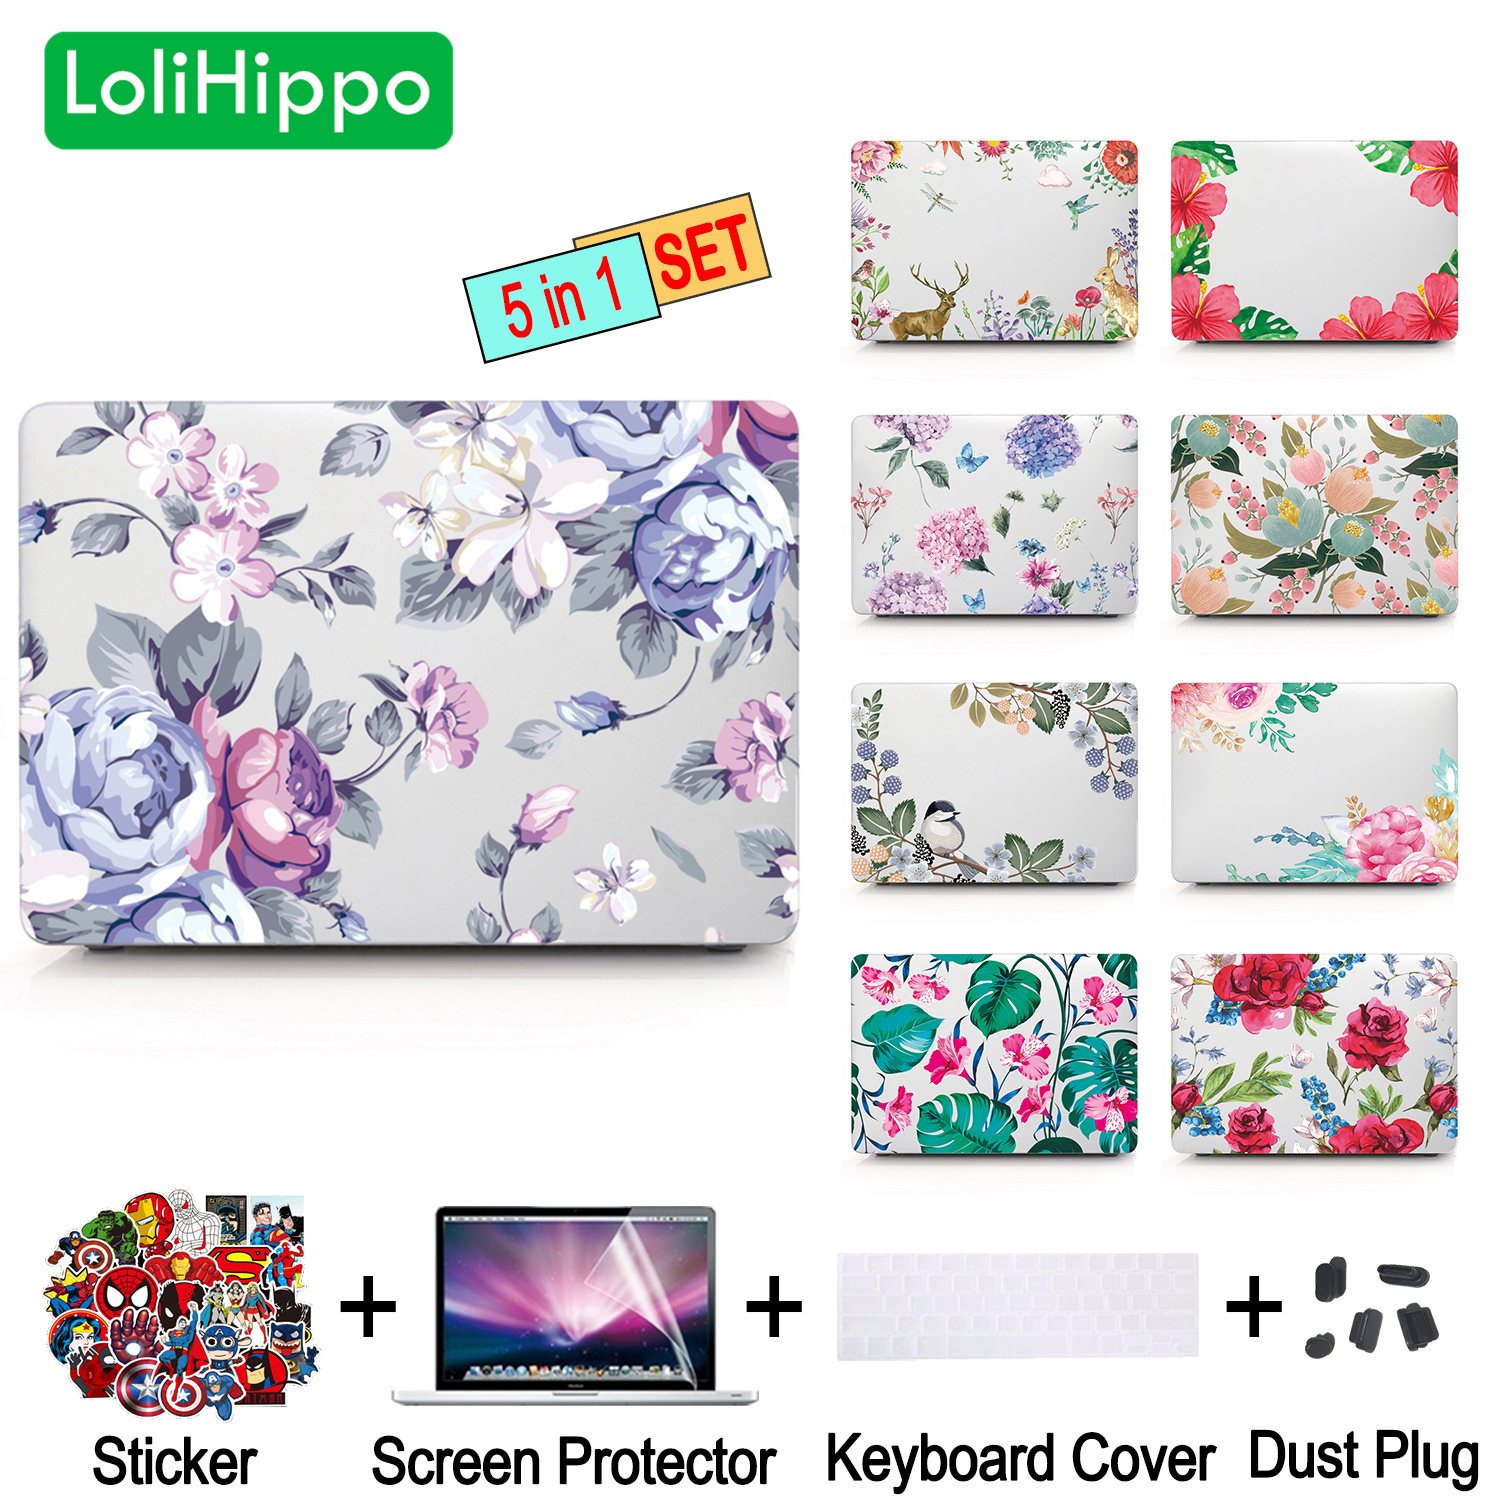 LoliHippo Flower Series Laptop Protective Case for Macbook New Air Pro 11 12 13.3 15 Inch Notebook Replace Cover A1706 A1989